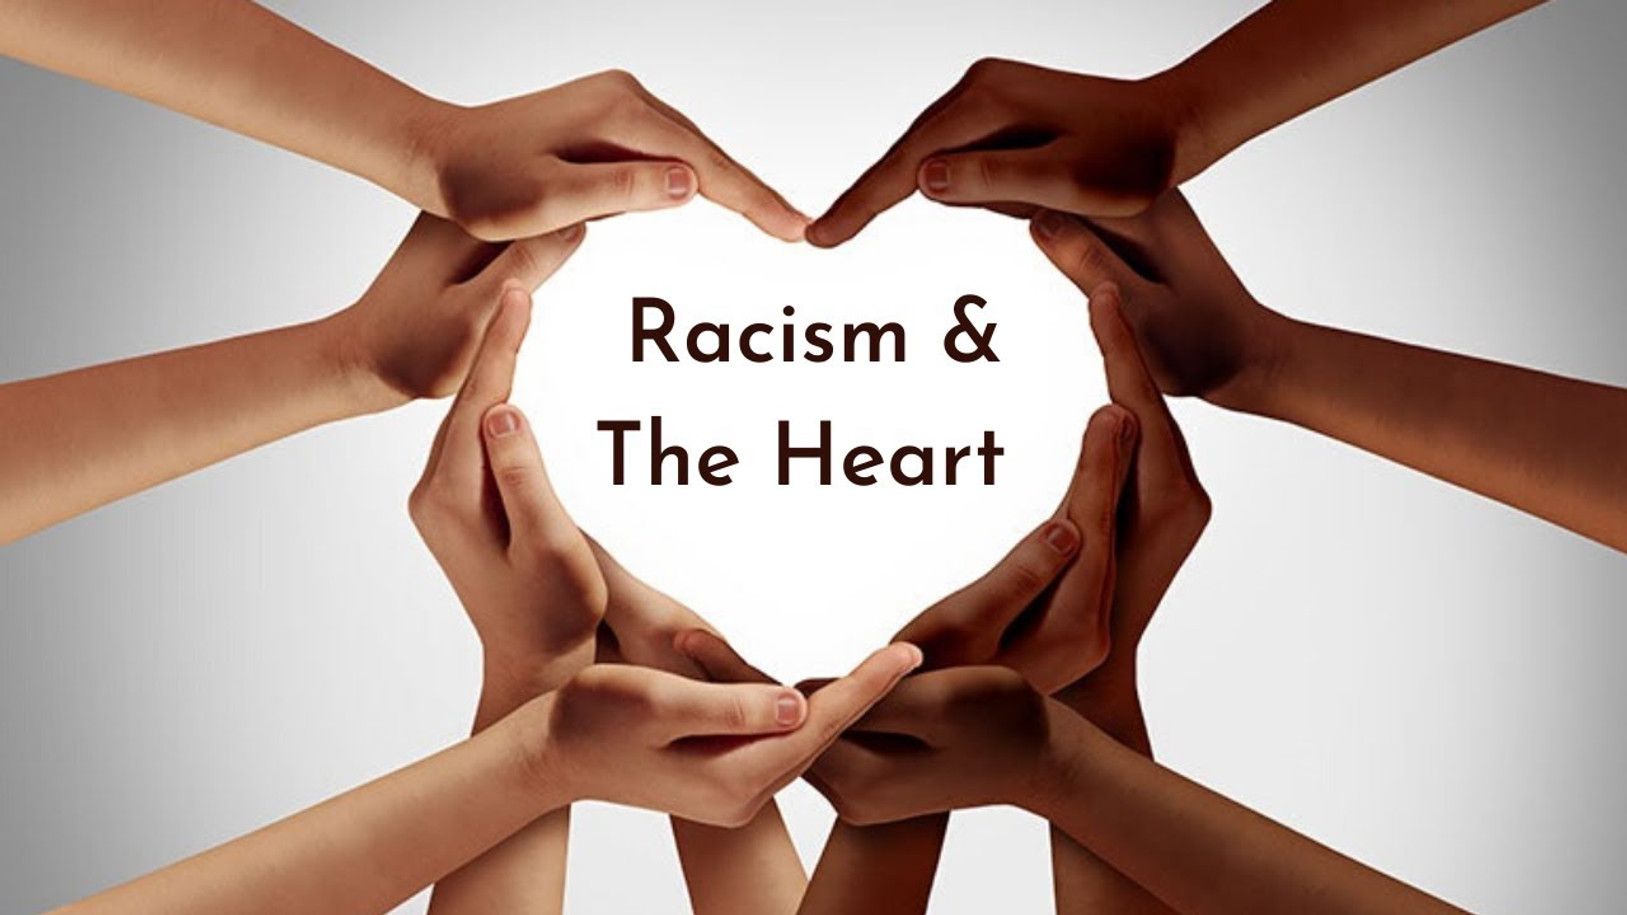 Racism & The Heart